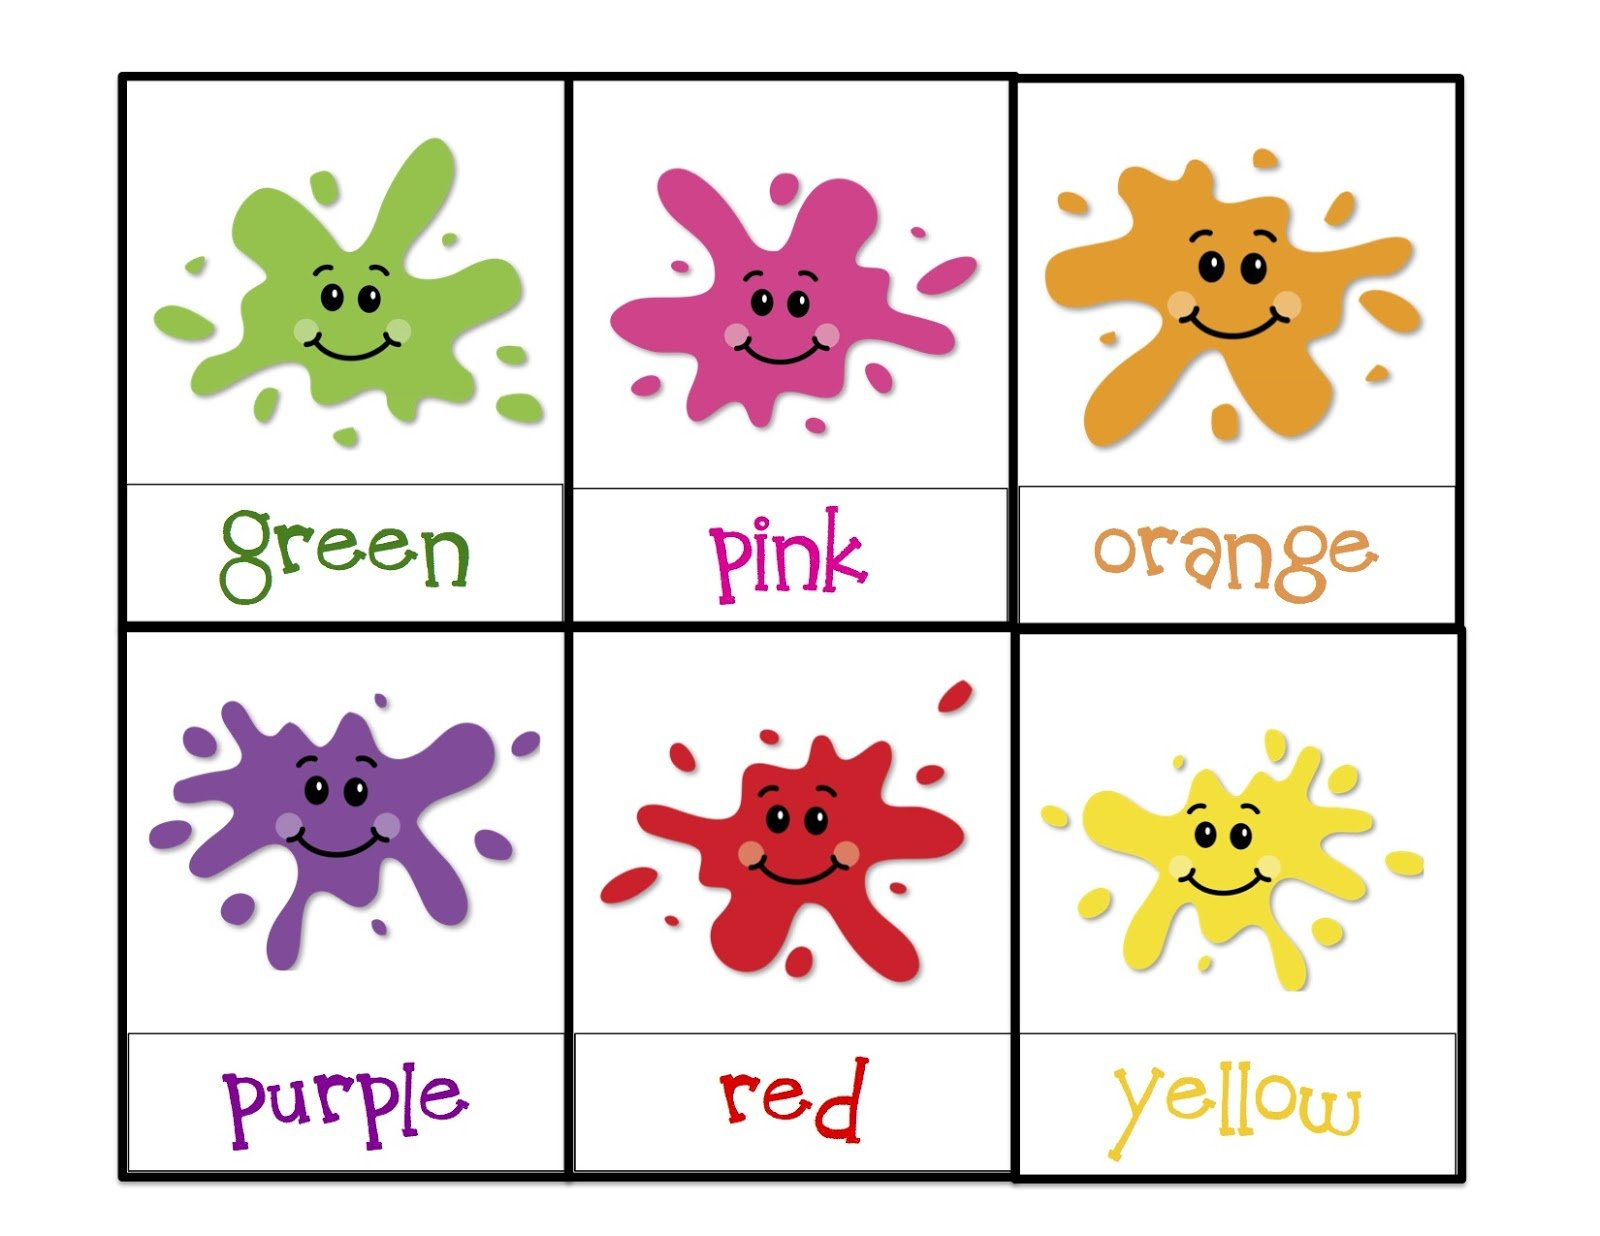 Coloring Ideas  Colors Printable Worksheets All And Share Free Year And Free Printable Educational Worksheets For 3 Year Olds